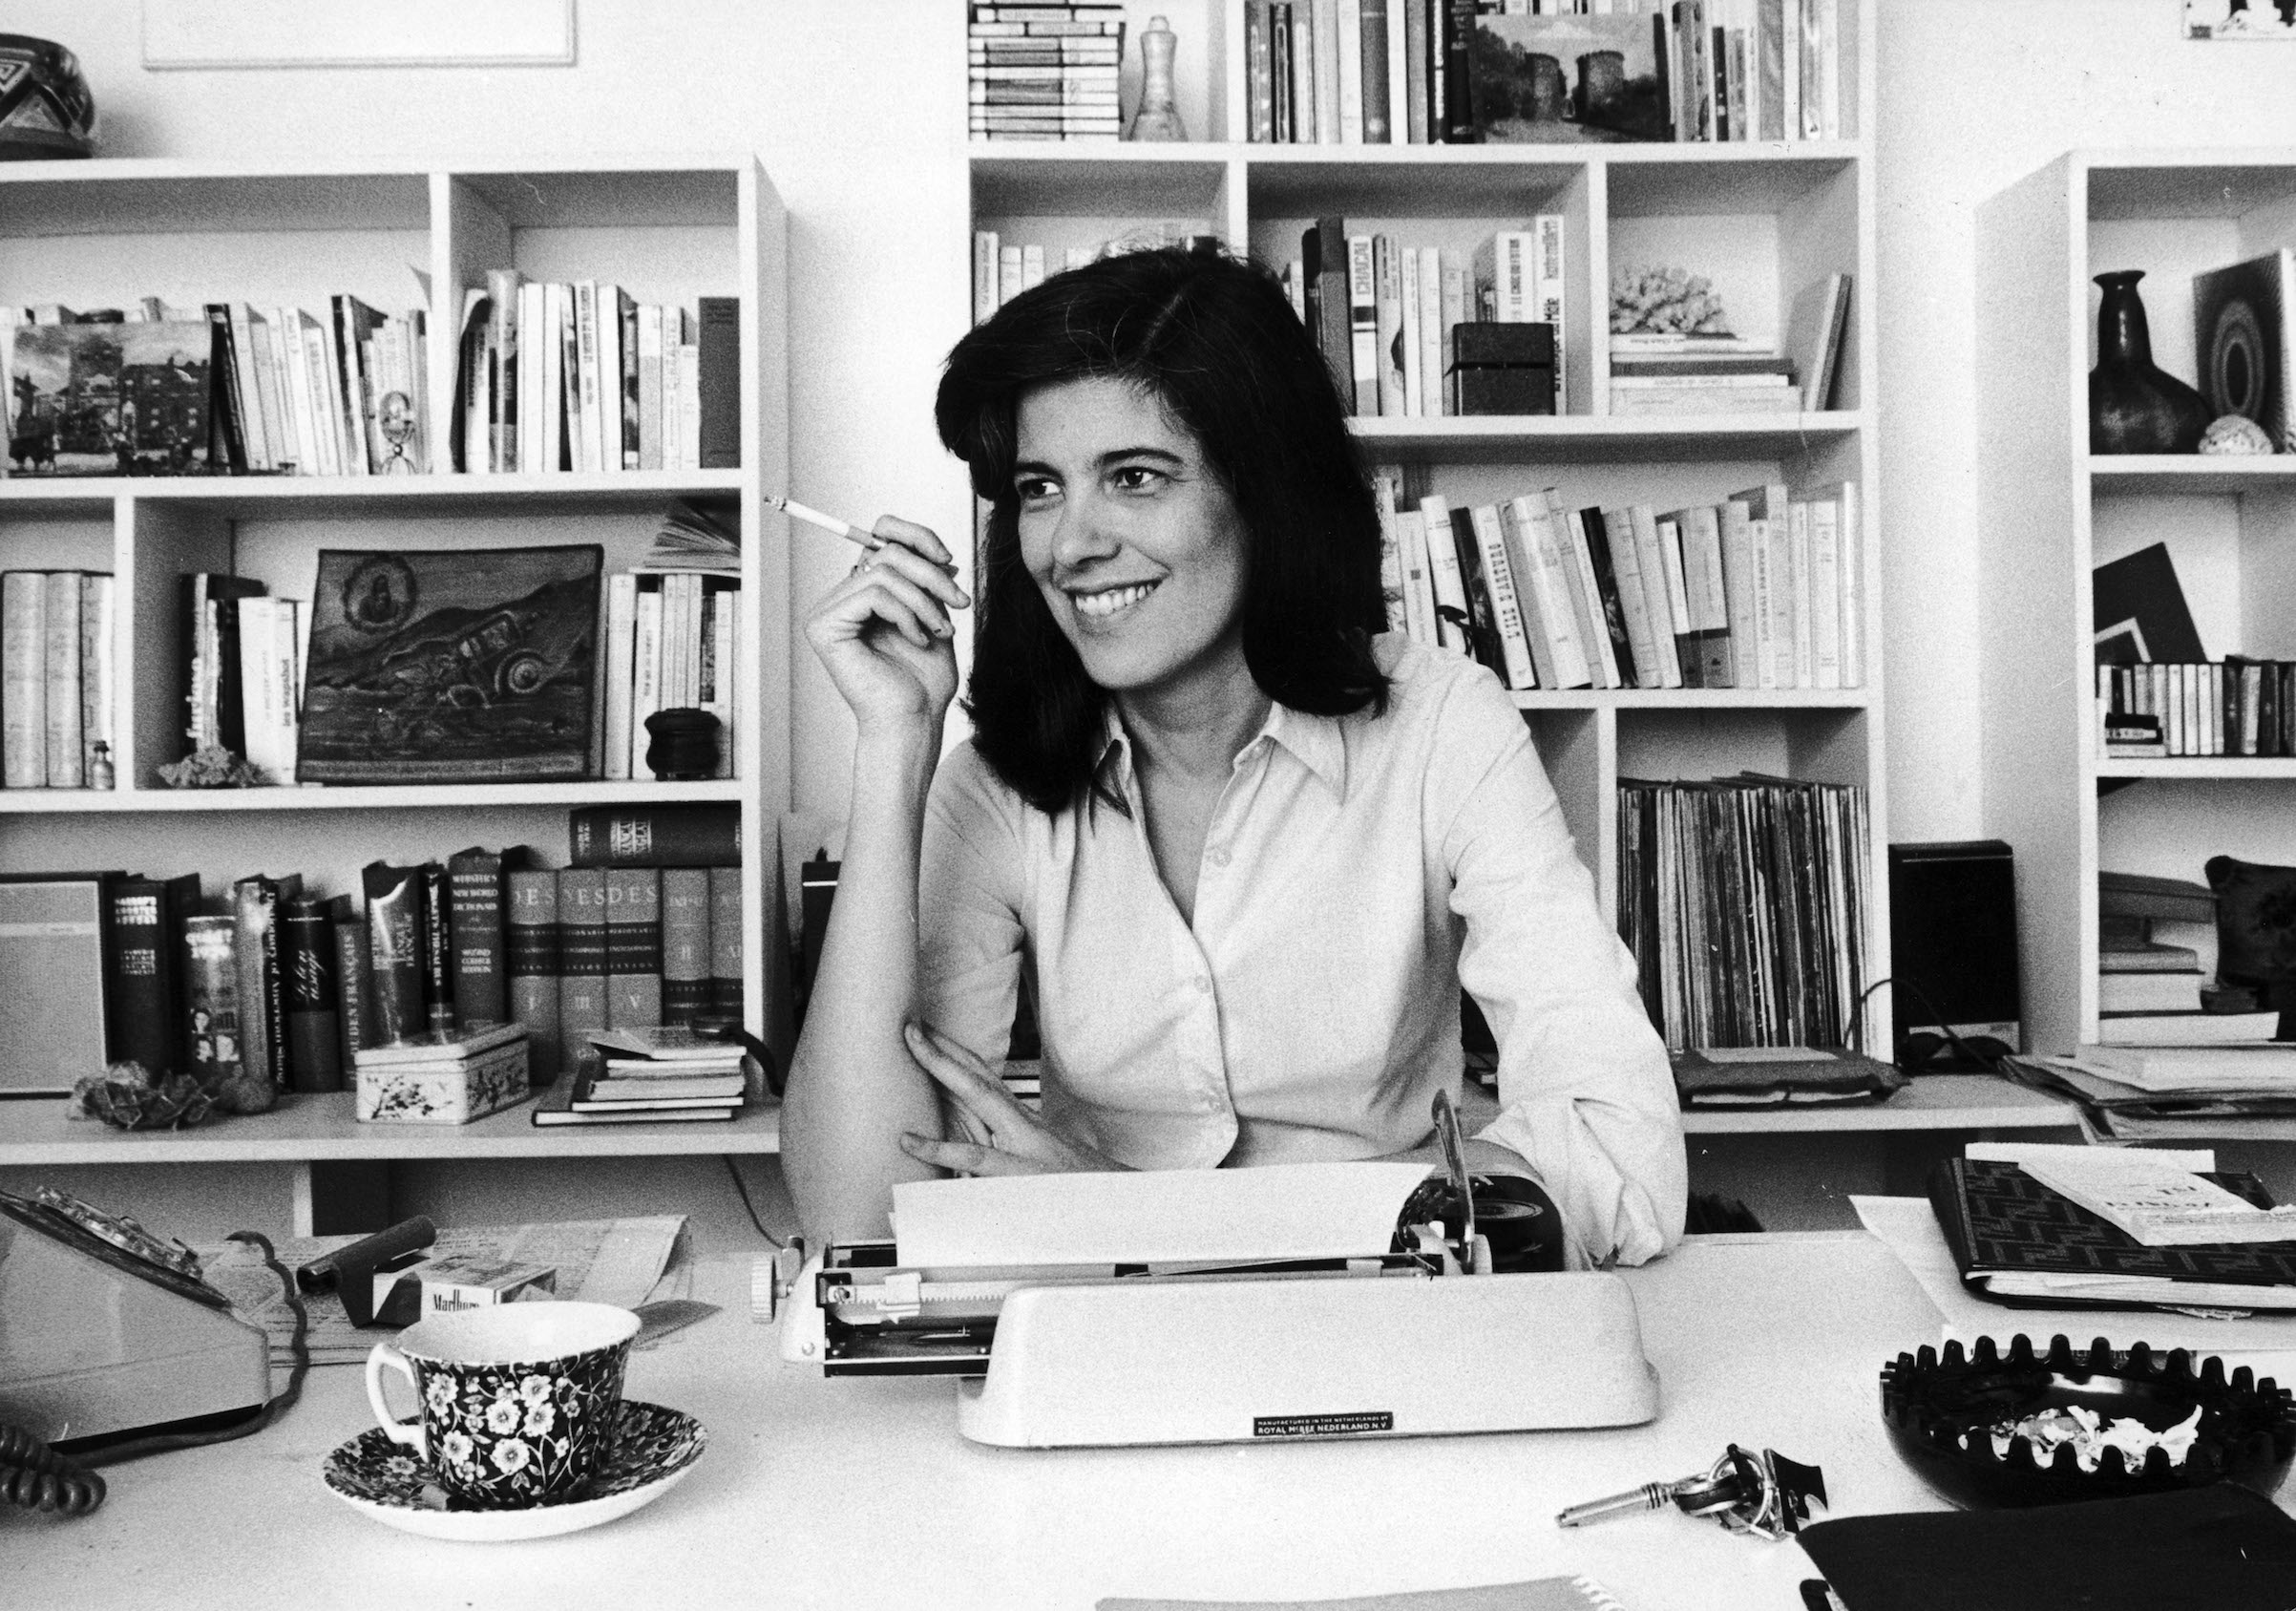 Susan Sontag, American writer, in France on Nov. 3, 1972